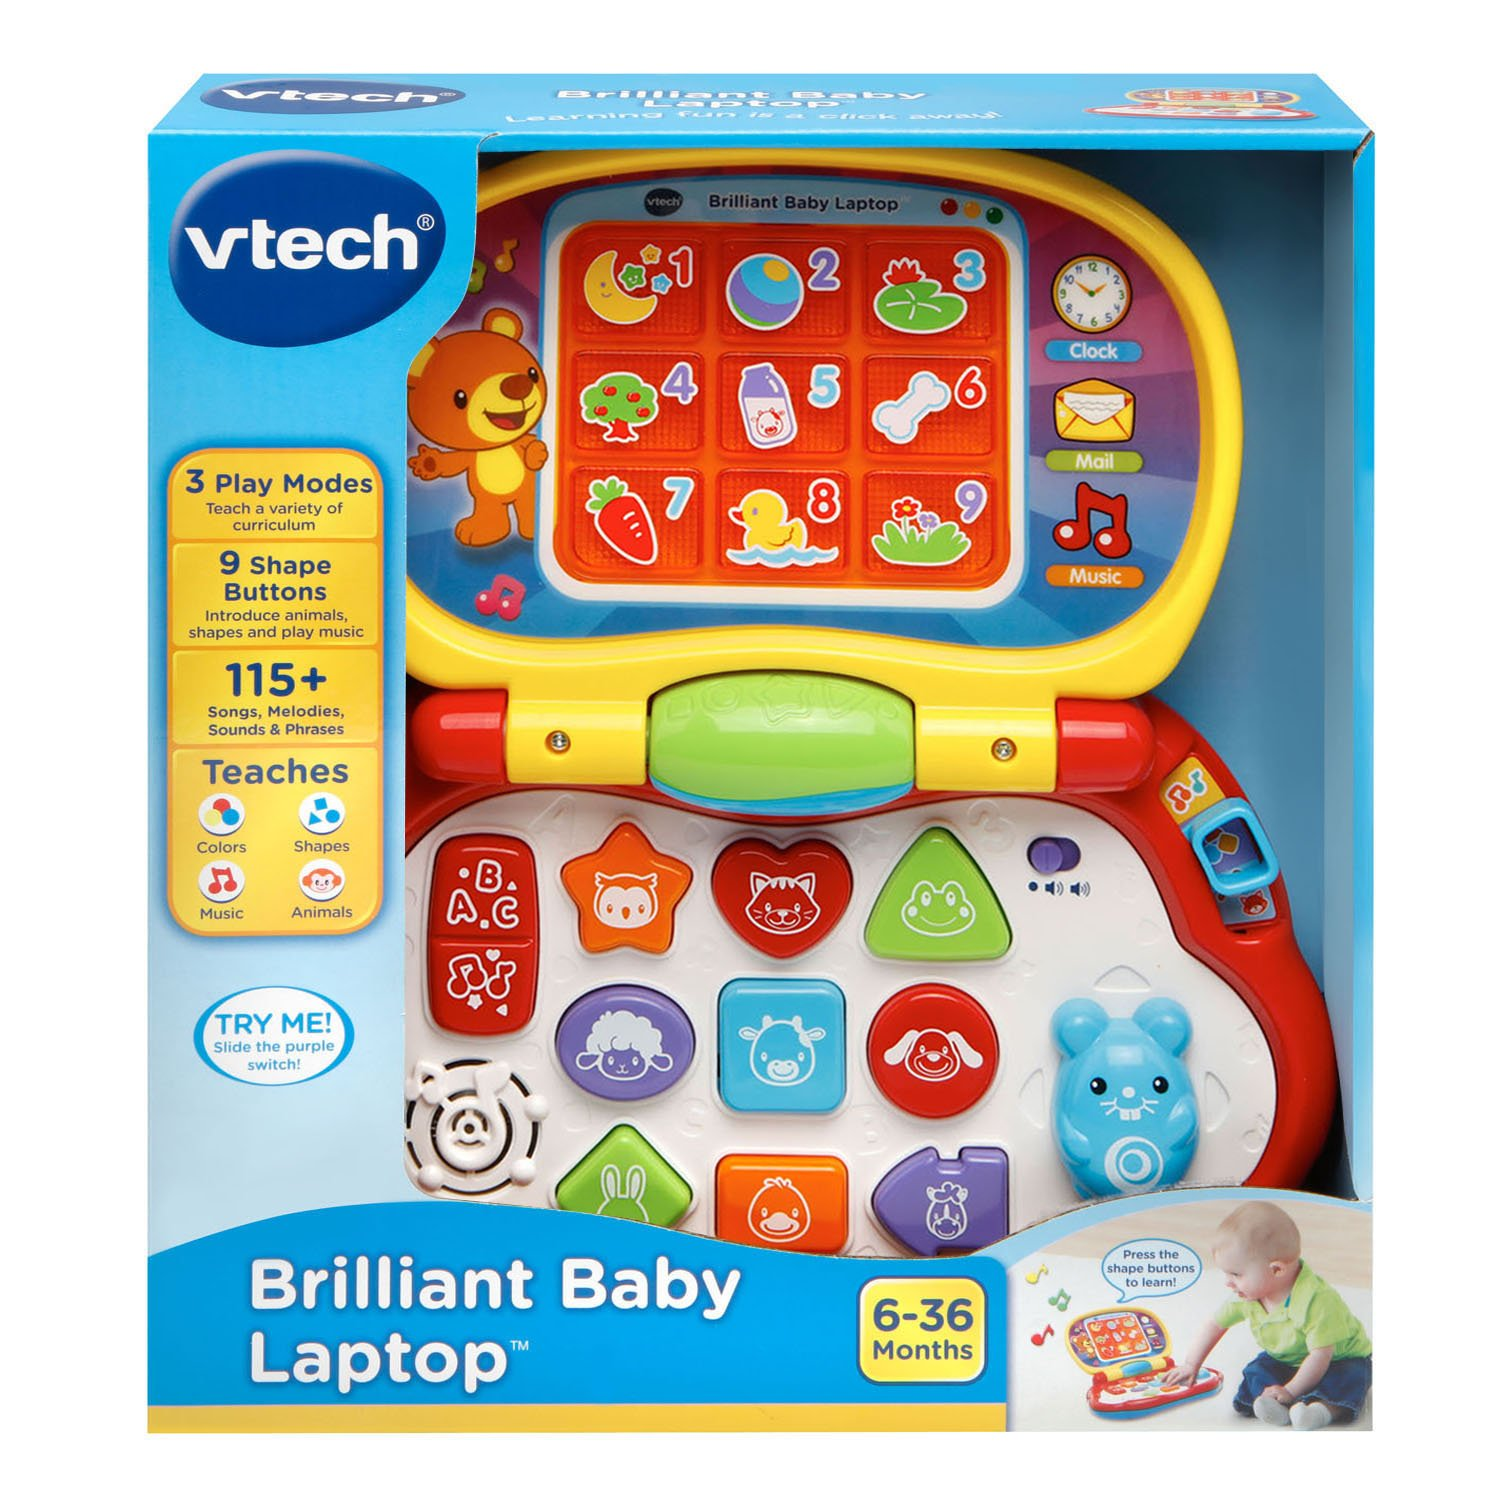 VTech Brilliant Baby Laptop Amazon Toys & Games